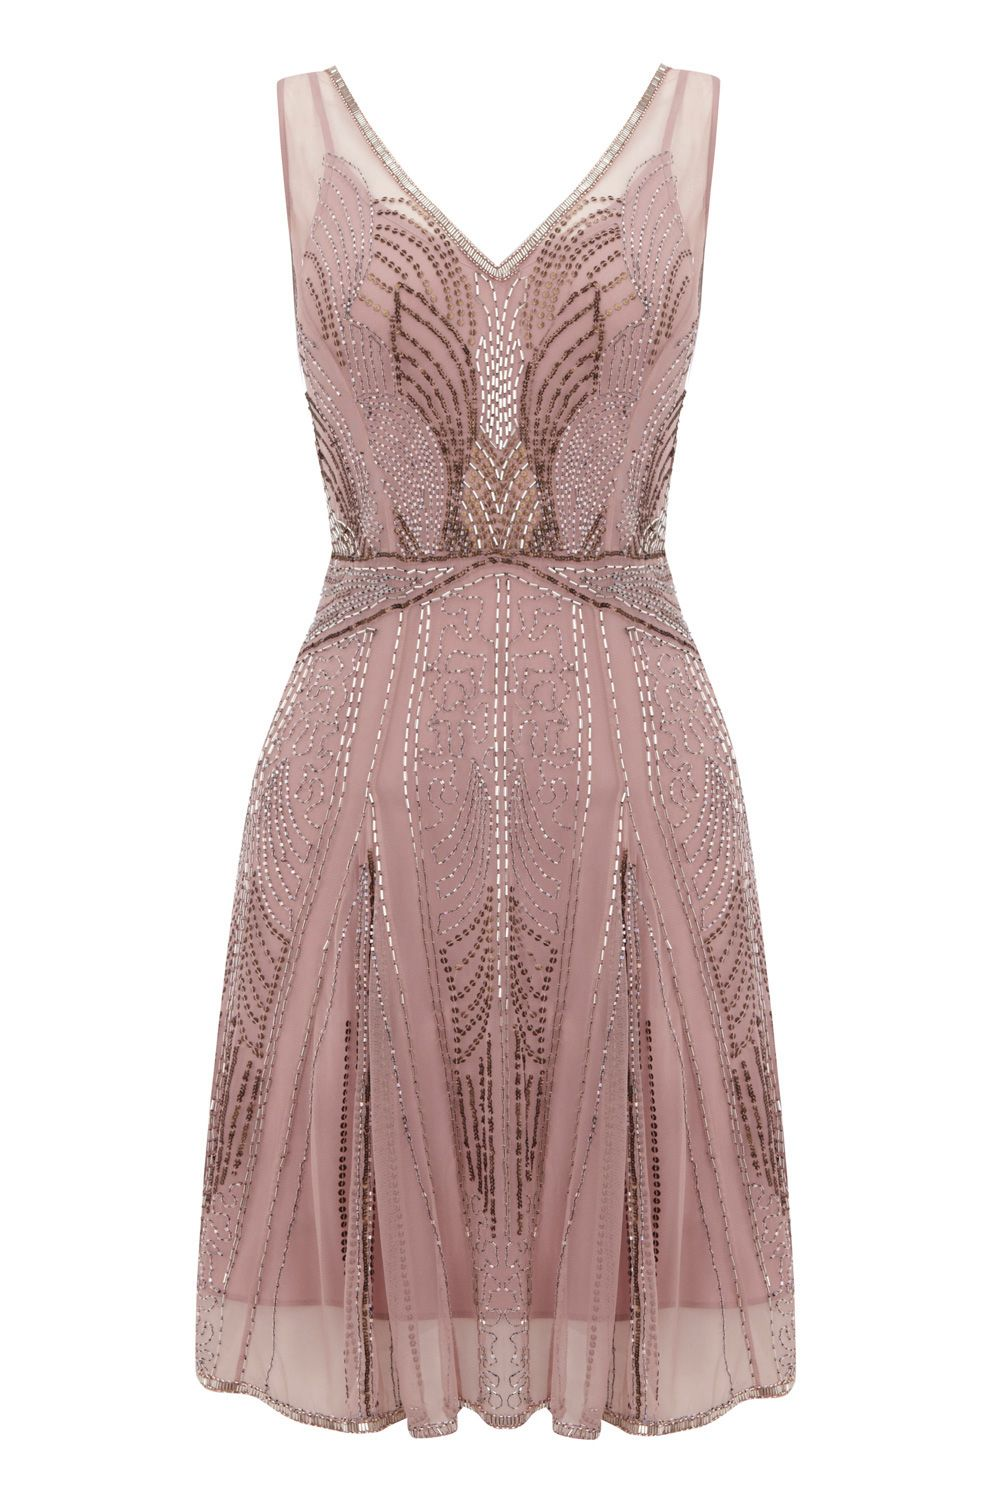 55aeb44460 vintage dusty rose in hourglass style. vintage dusty rose in hourglass  style Beaded Bridesmaid Dresses ...